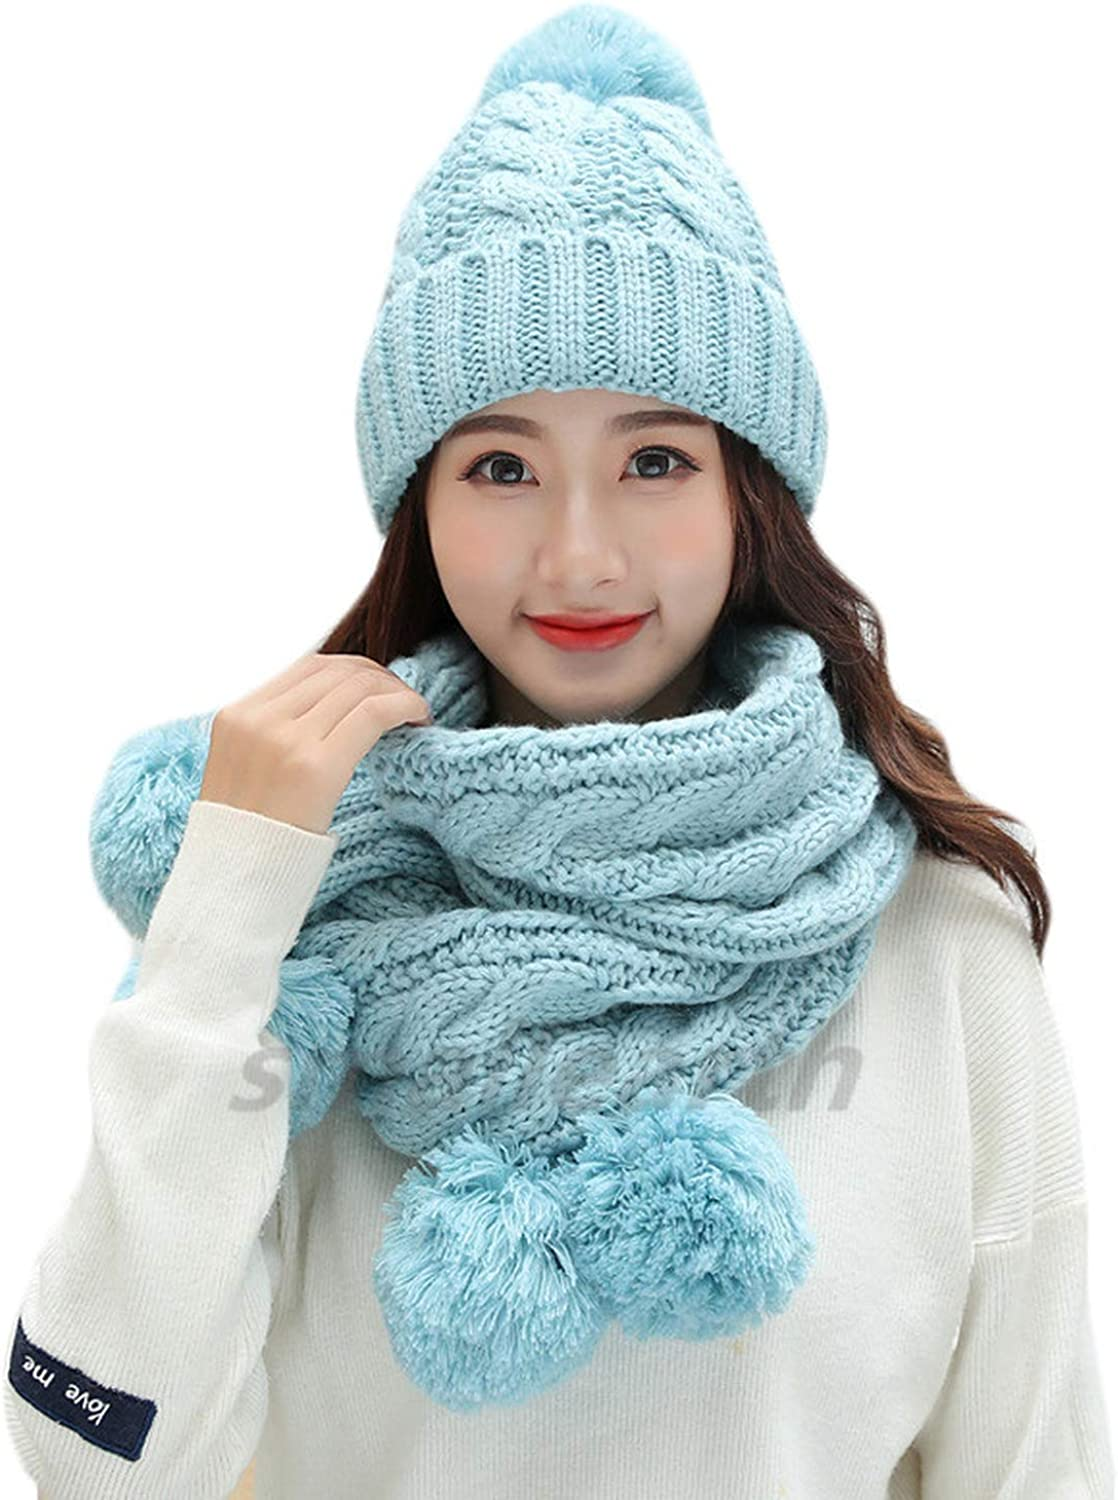 2 Pieces Set Winter Pompom Hat And Scarf Set For Women Girls Cotton Warm Caps Female Winter Casual Solid color Knitted Hats